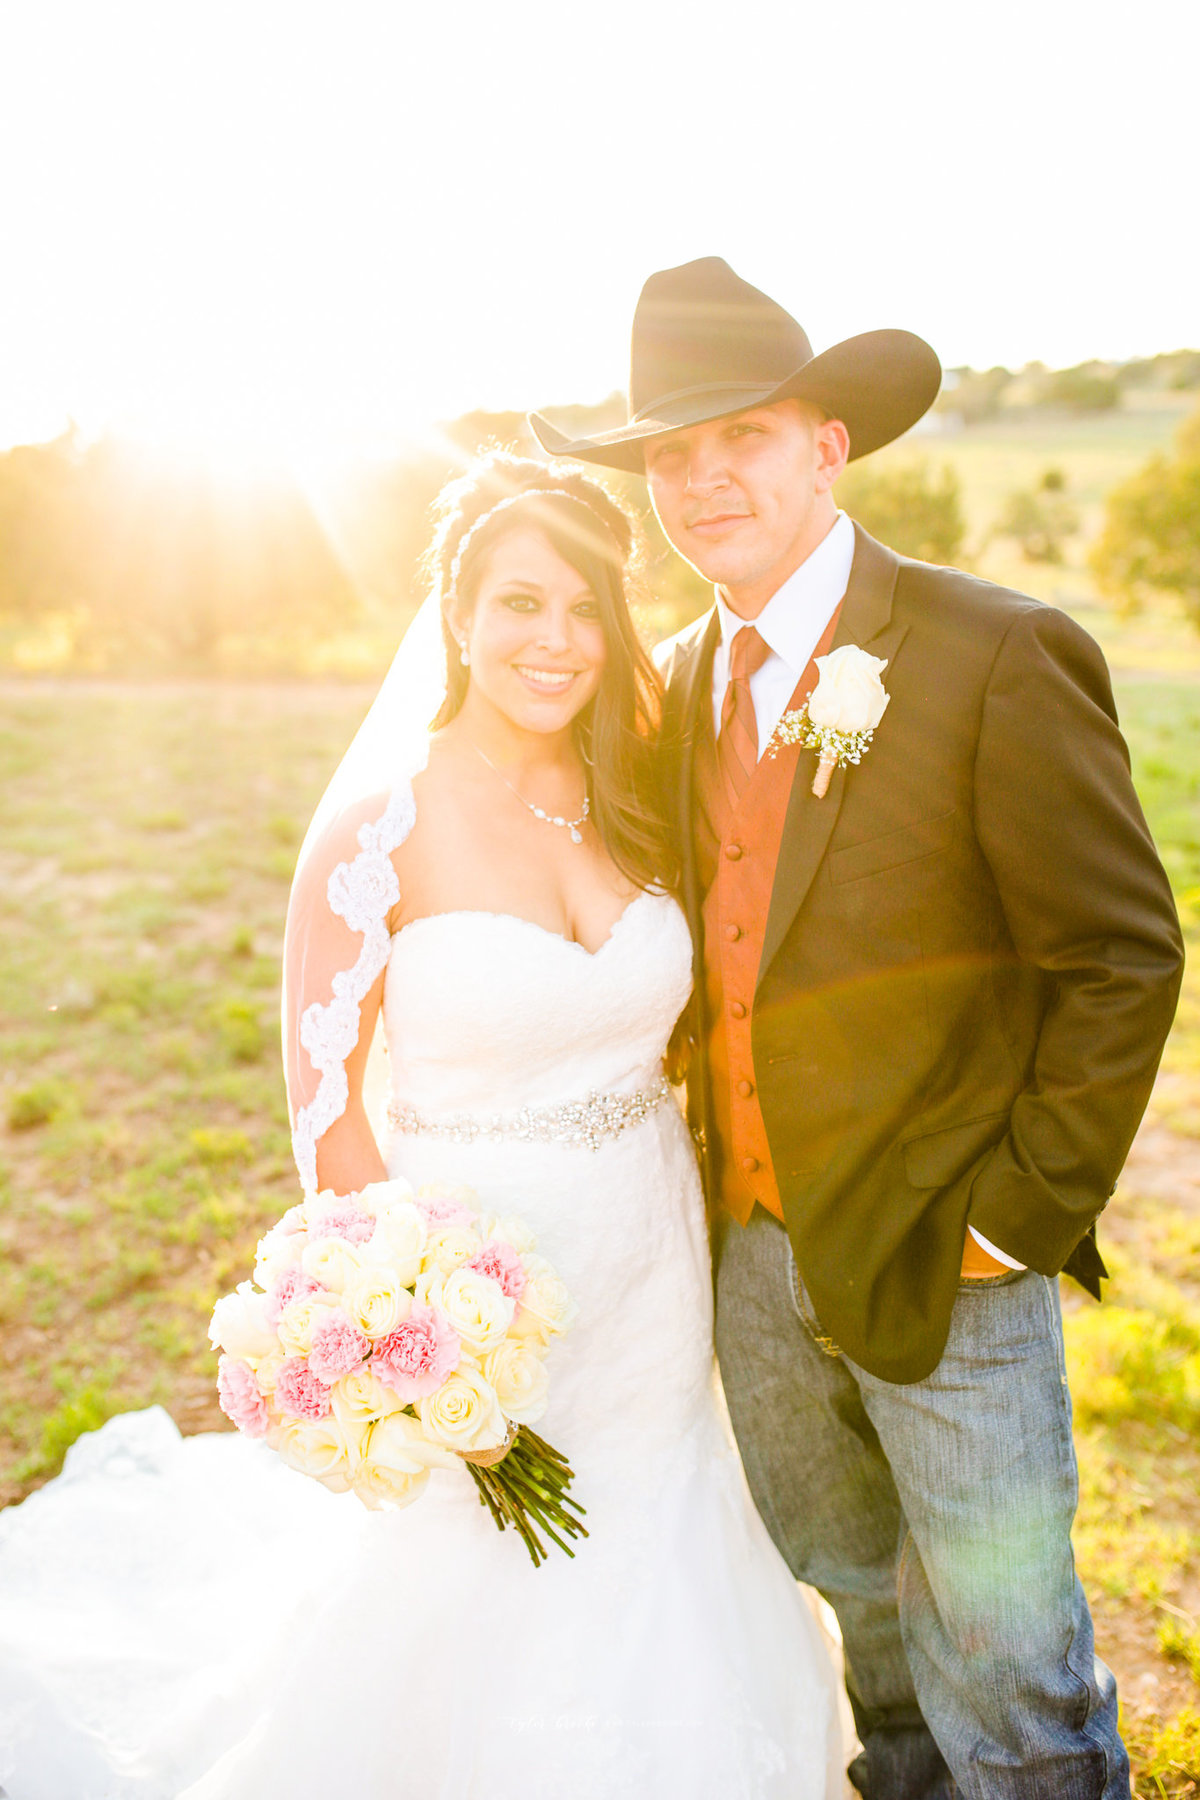 Edgewood-New-Mexico_Country-Wedding-Photographer_www.tylerbrooke.com_Kate-Kauffman-26-of-35